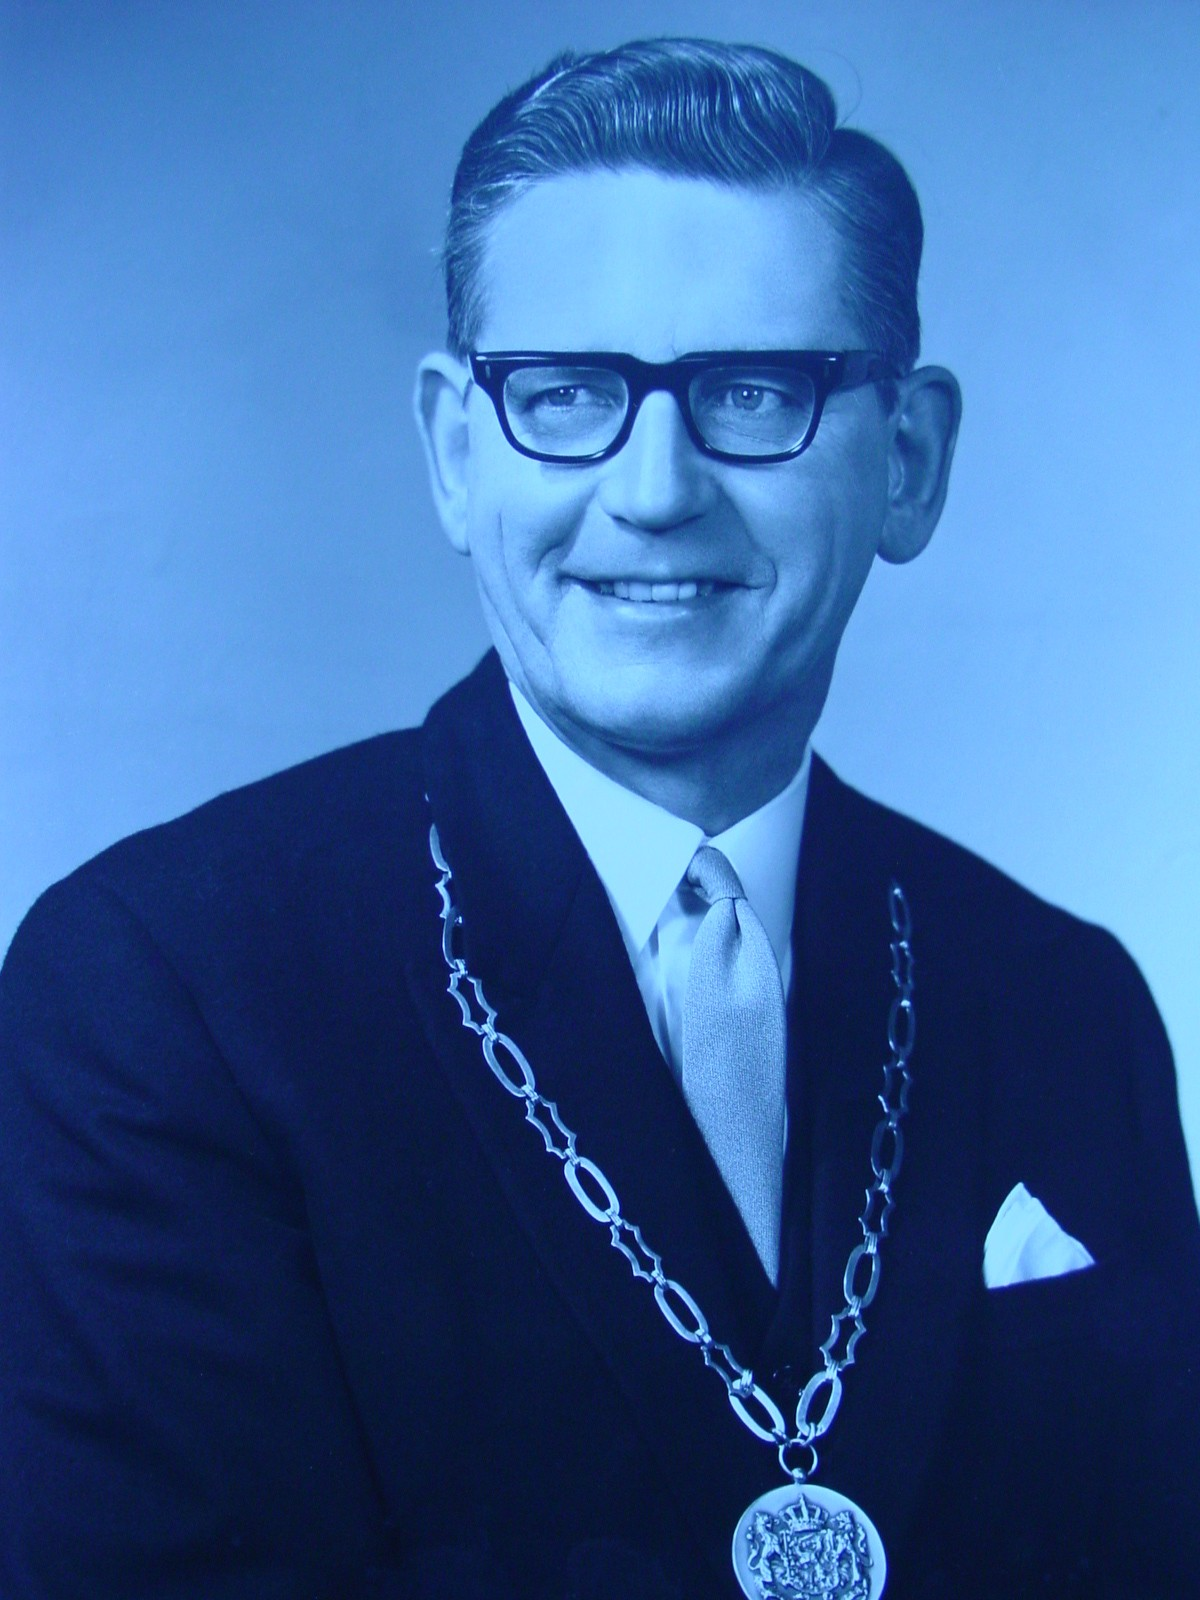 Burgemeester P.A. Wolters